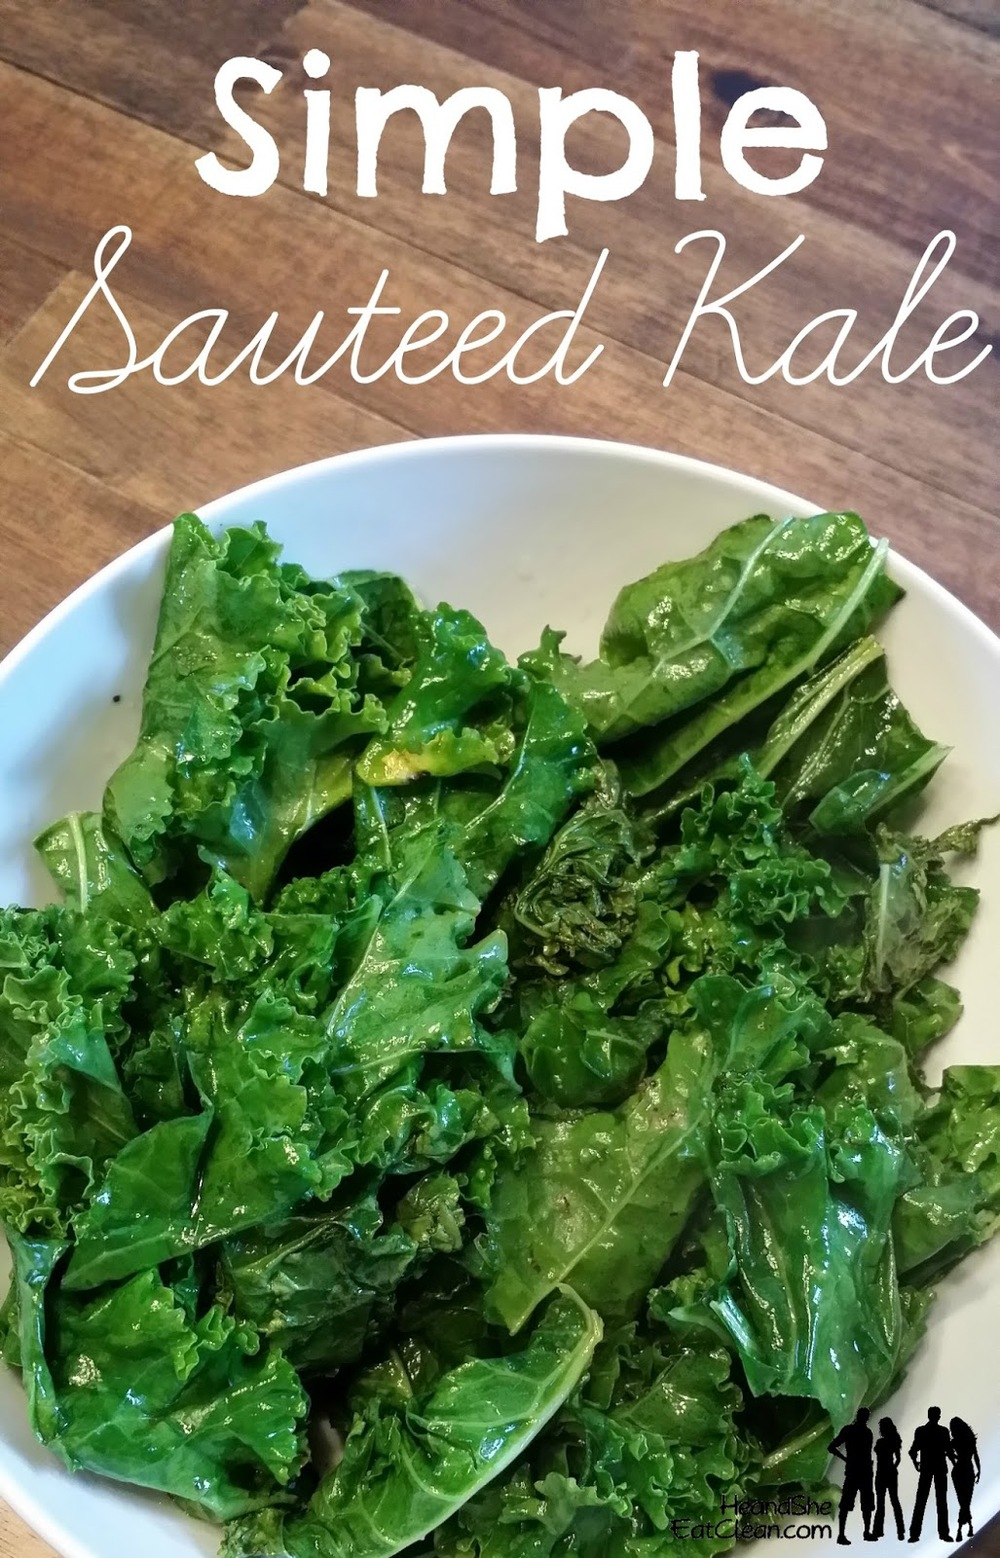 simple-easy-quick-sauteed-vegetables-leafy-greens-kale-not-spinach-paleo-approved-coconut-oil-he-she-eating-clean.jpg